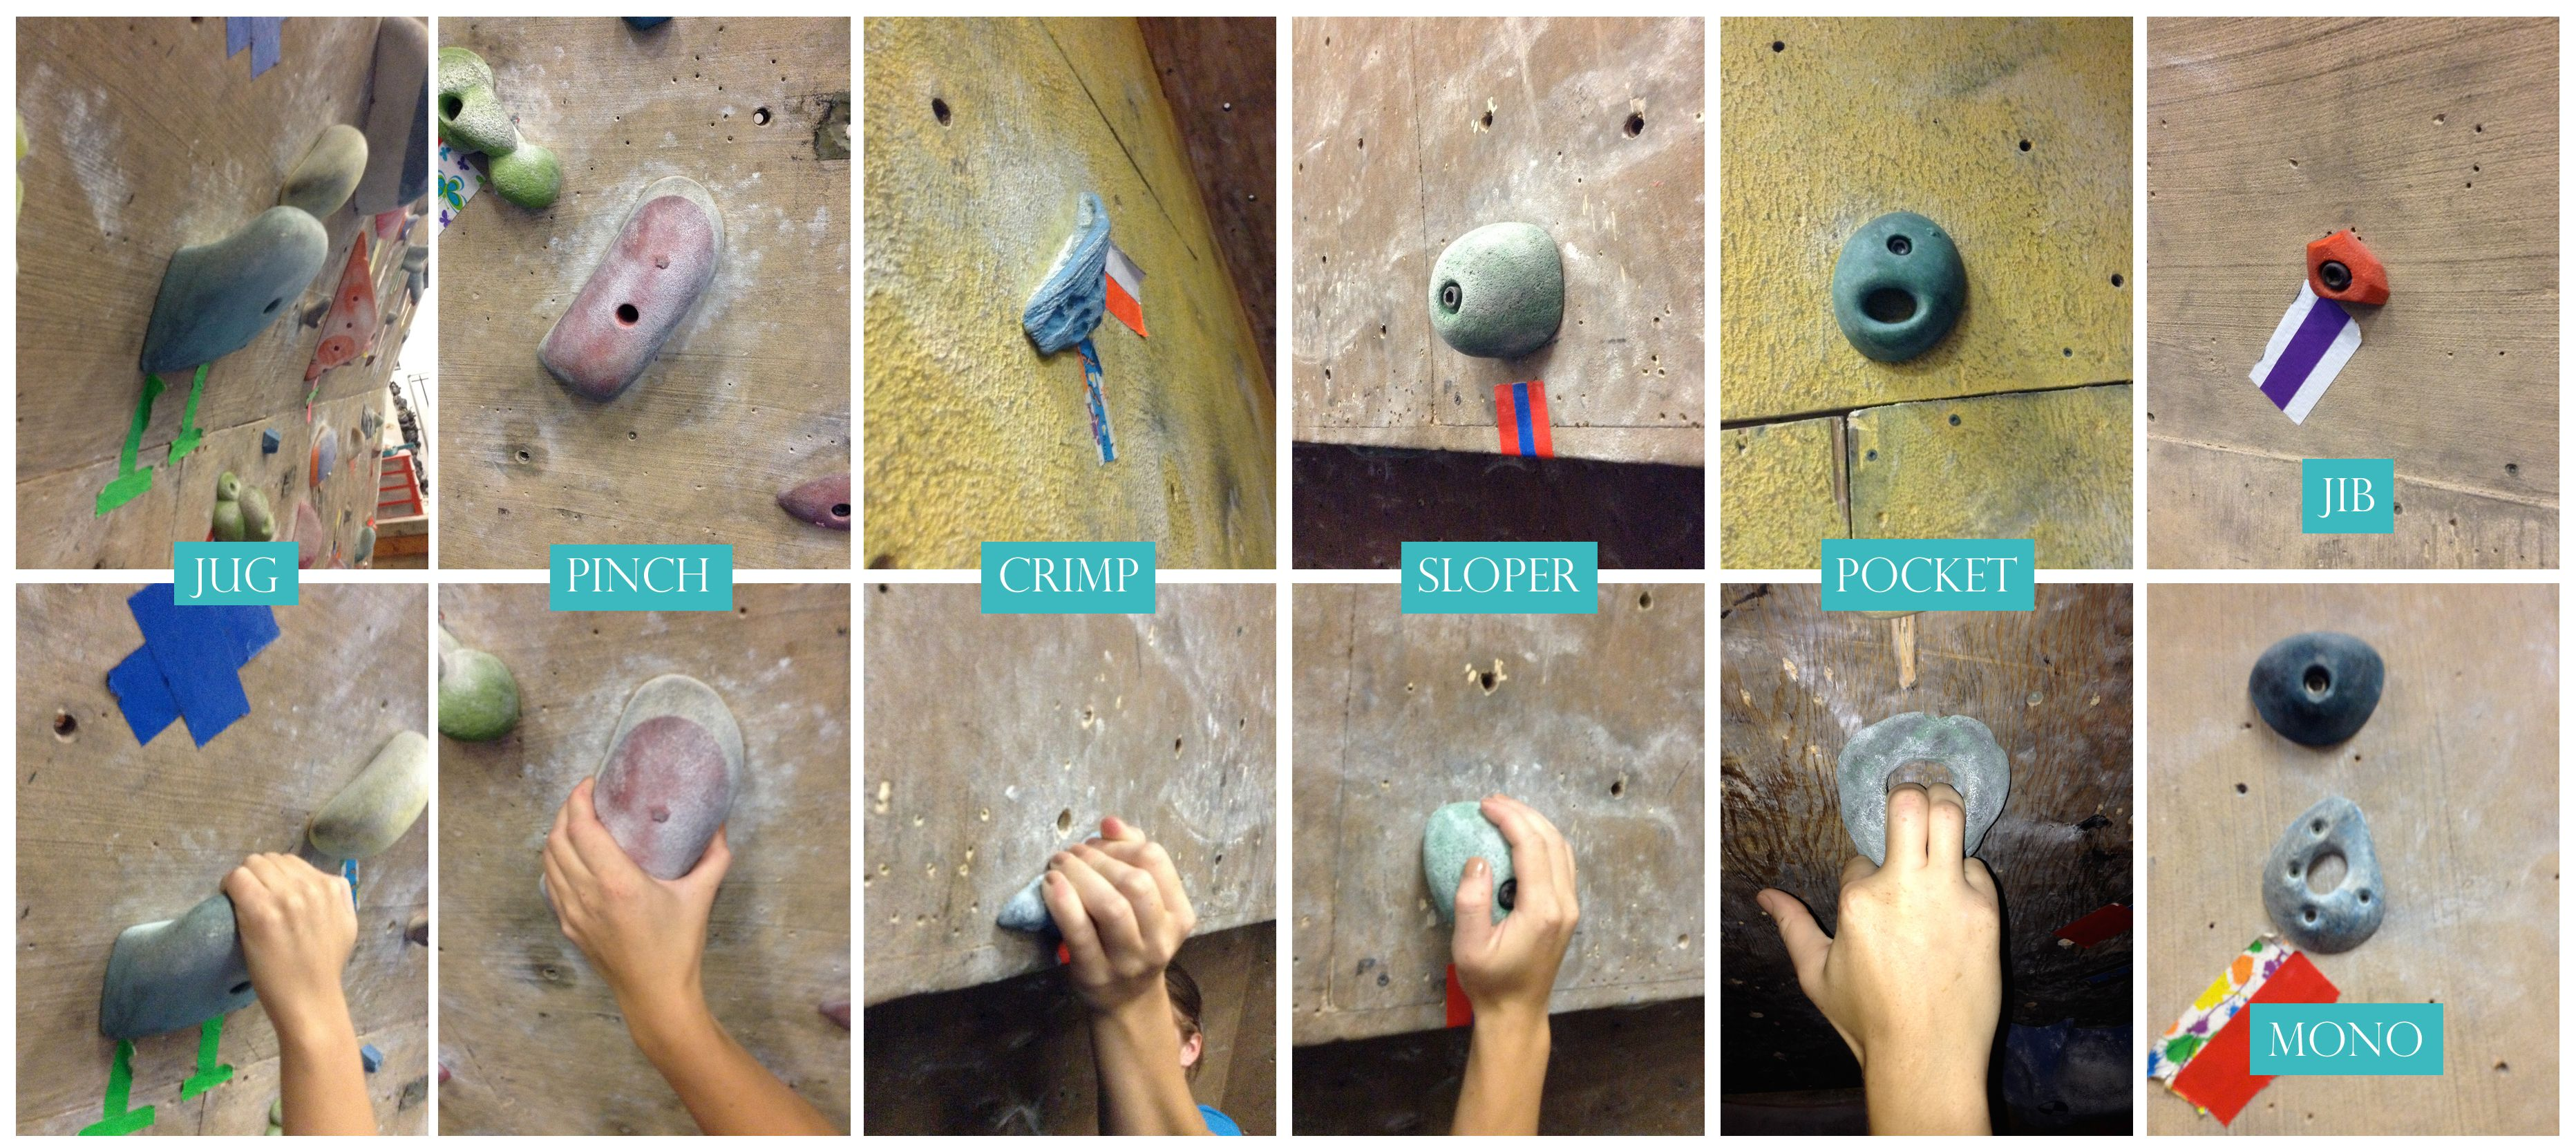 Types of holds - Libertyville has mostly jugs; Foglia has ...